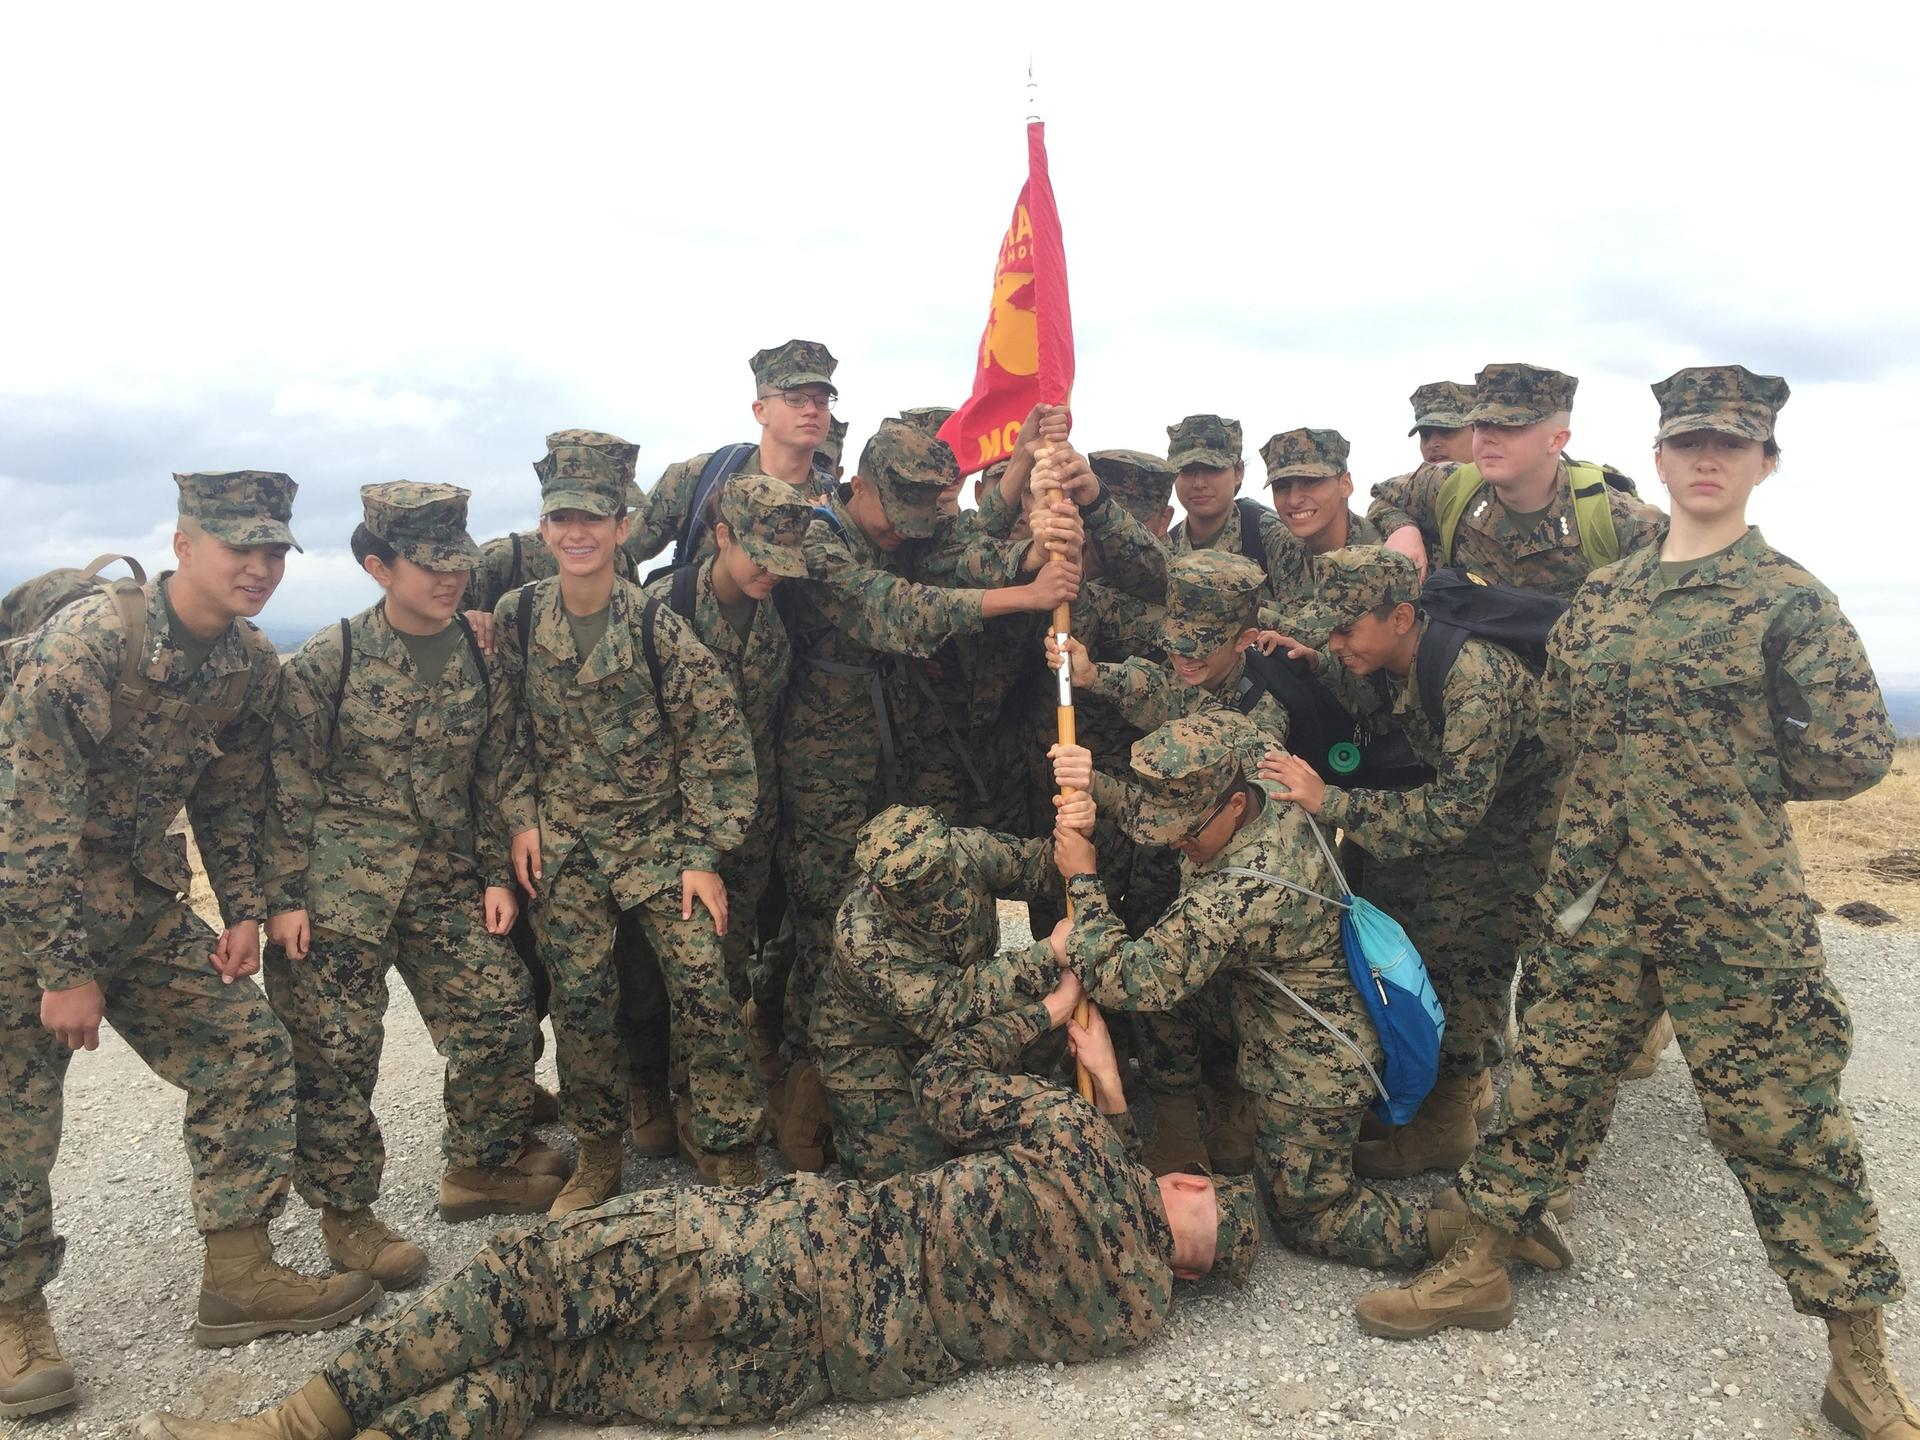 MCJROTC cadets raising Marine Corps flag on top of hill